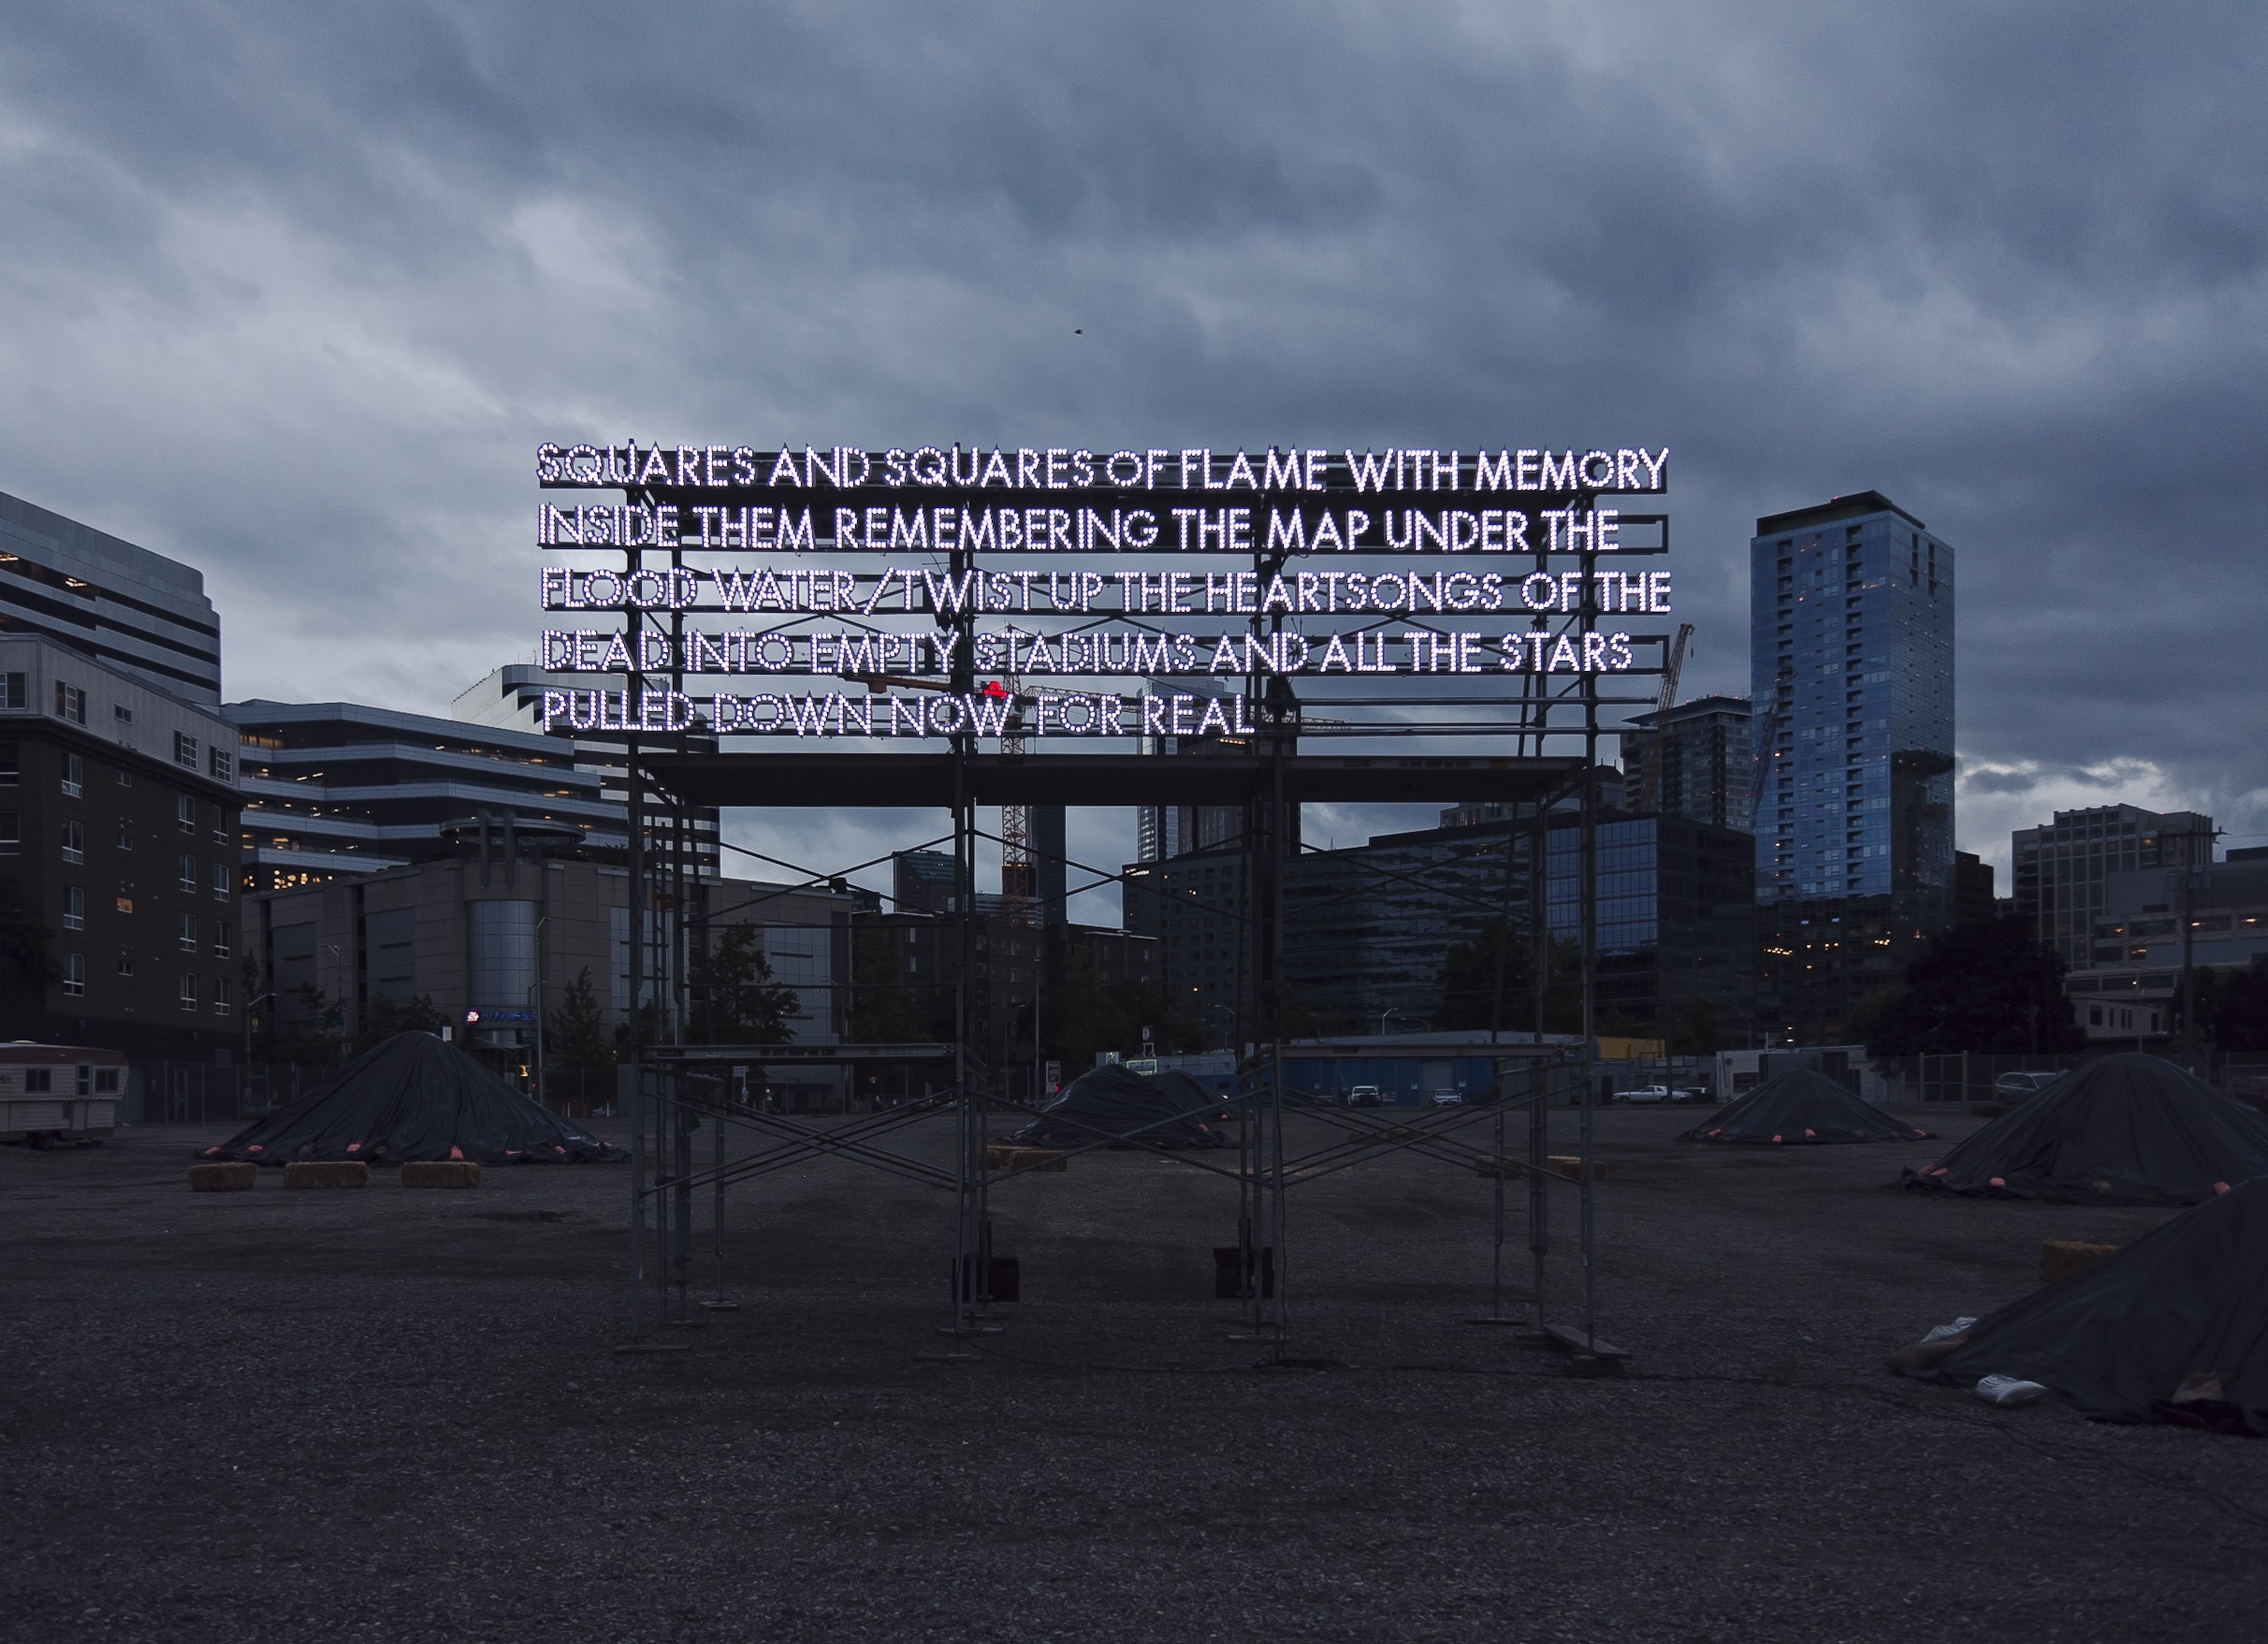 A photograph depicts a work of installation art featuring an illuminated stanza of poetry against a cityscape at dusk